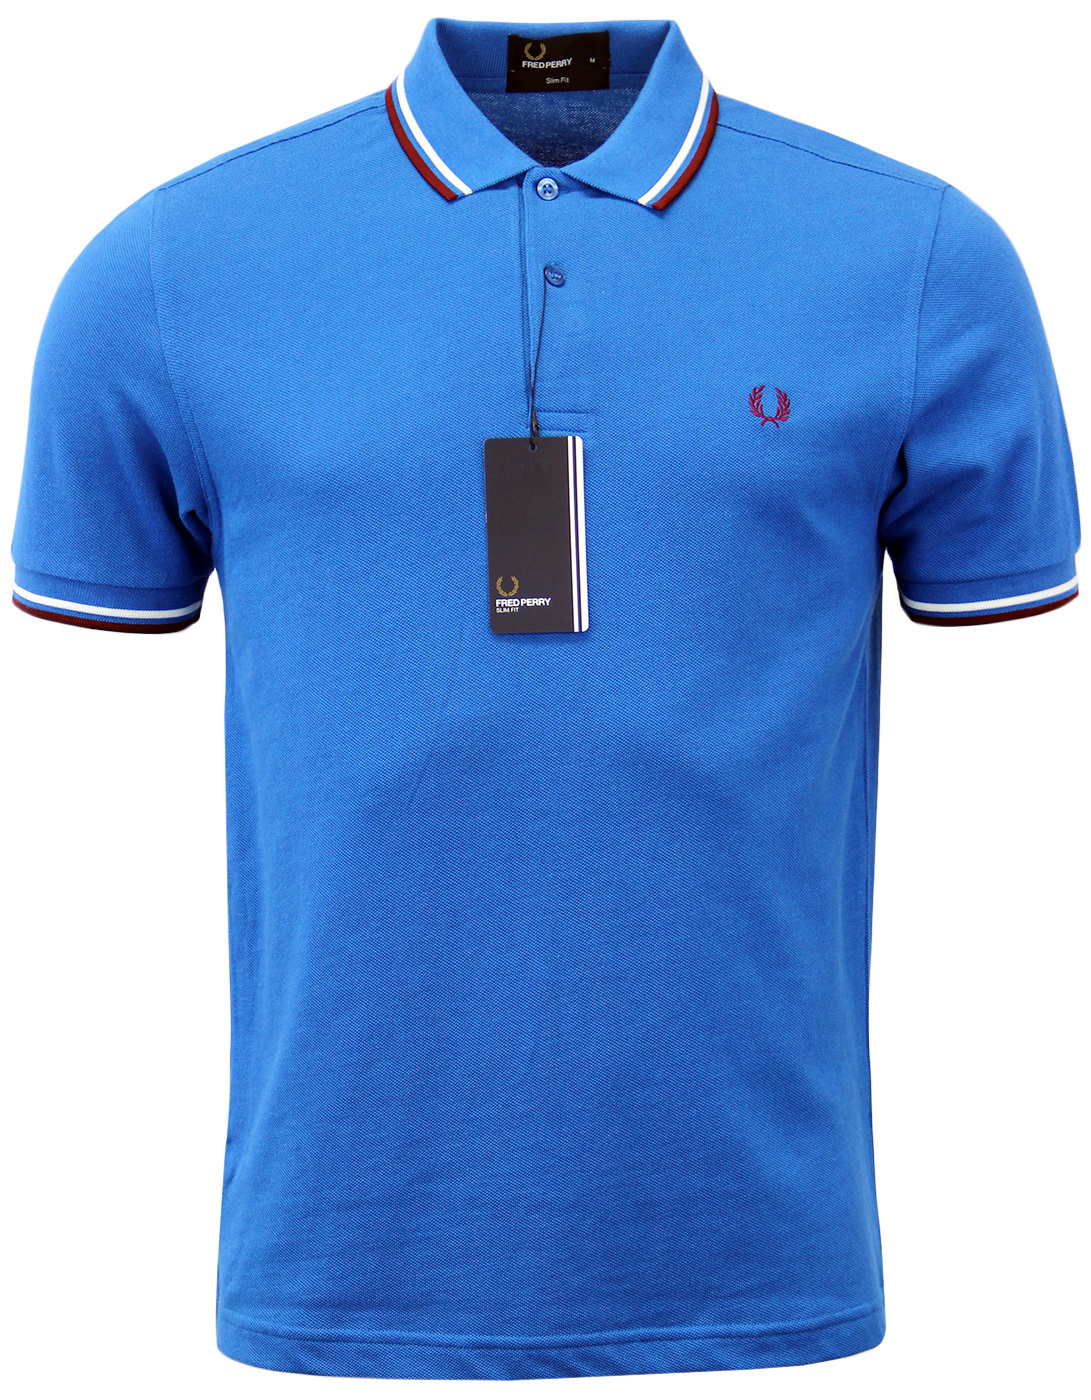 FRED PERRY M3600 Mod Twin Tipped Polo Shirt BLUE